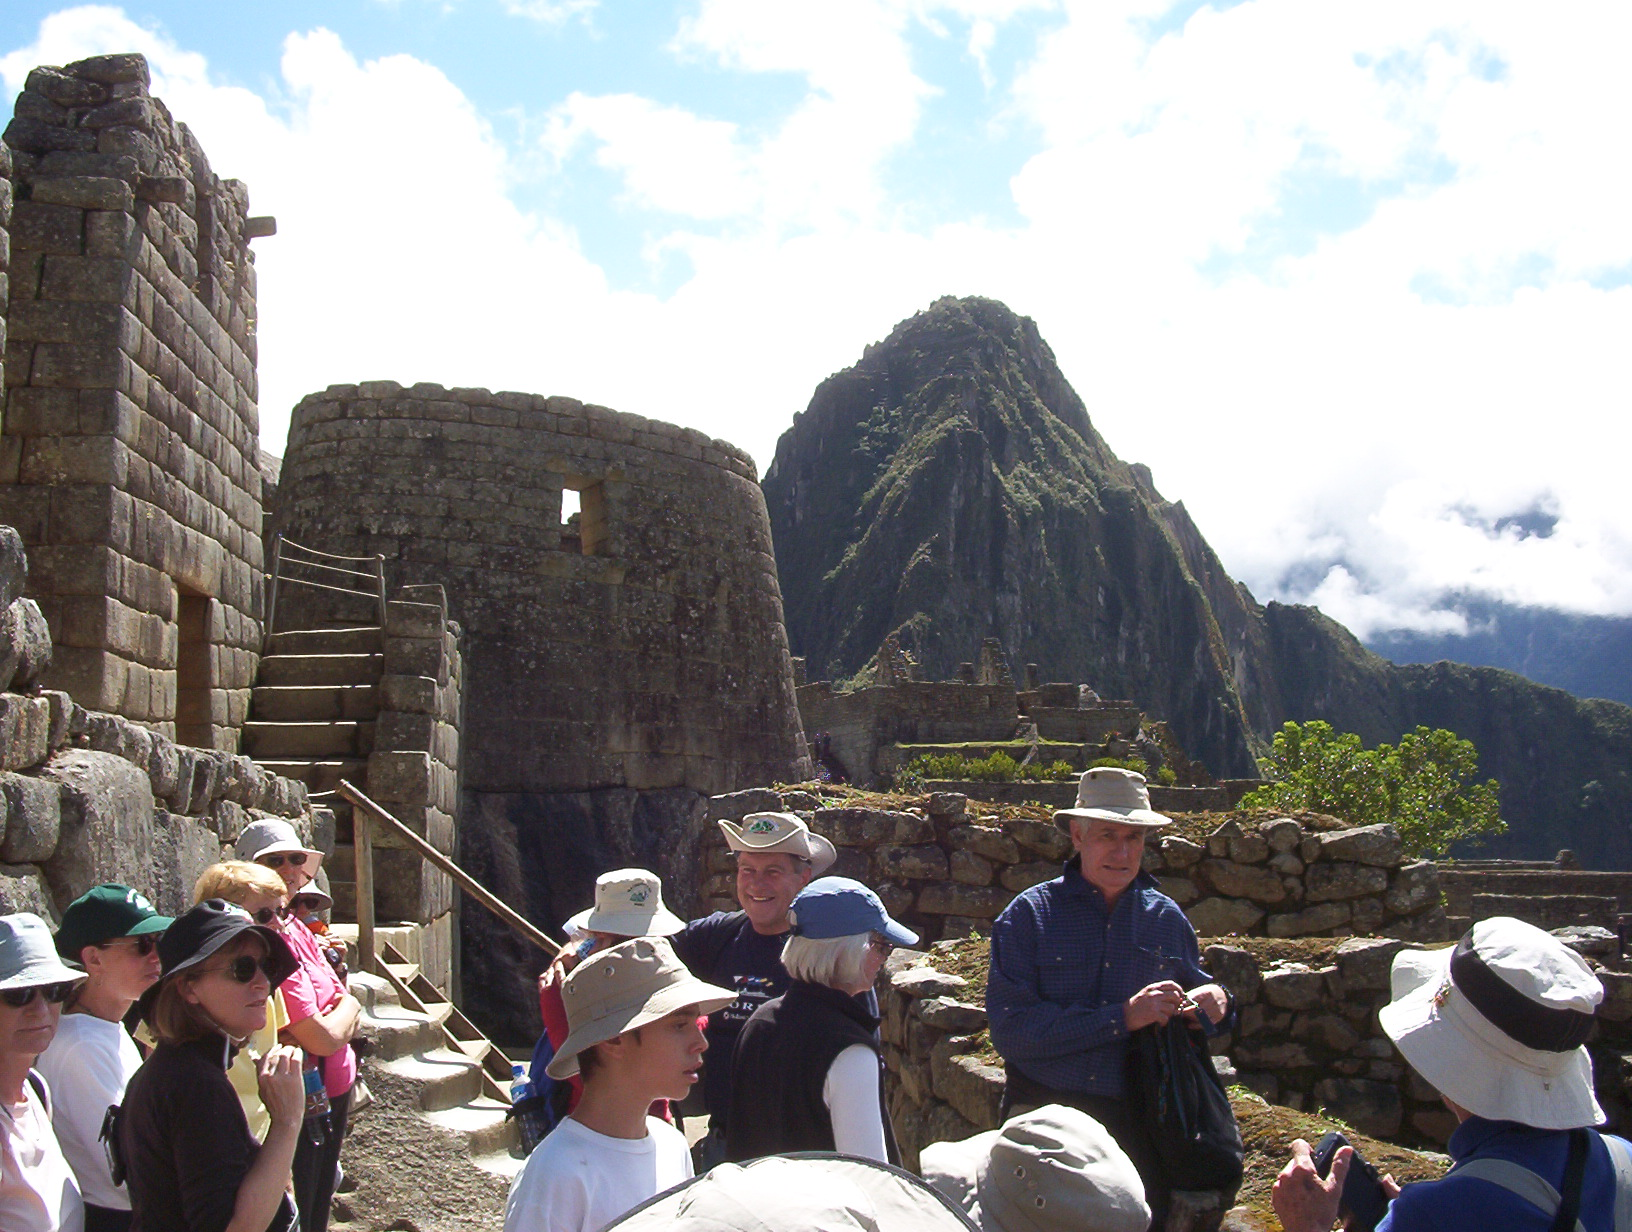 Machu Picchu with Huayna Picchu in the background